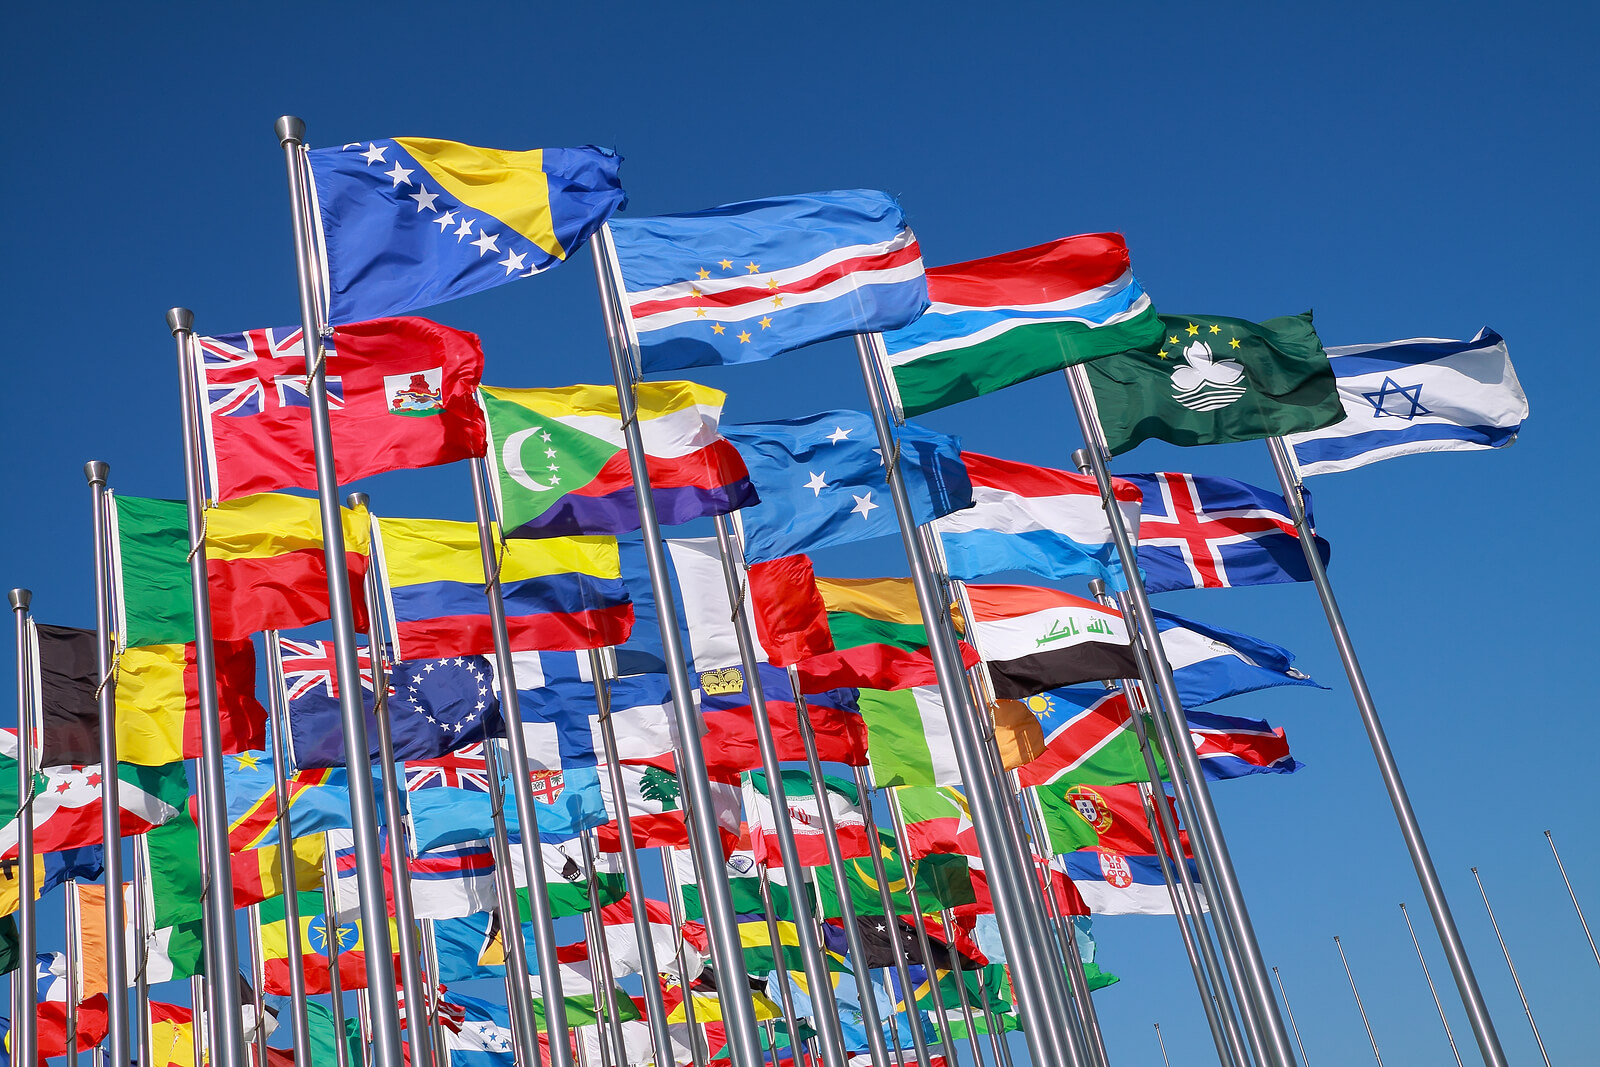 Flags of all nations of the world are flying in blue sunny sky for Commonwealth Future